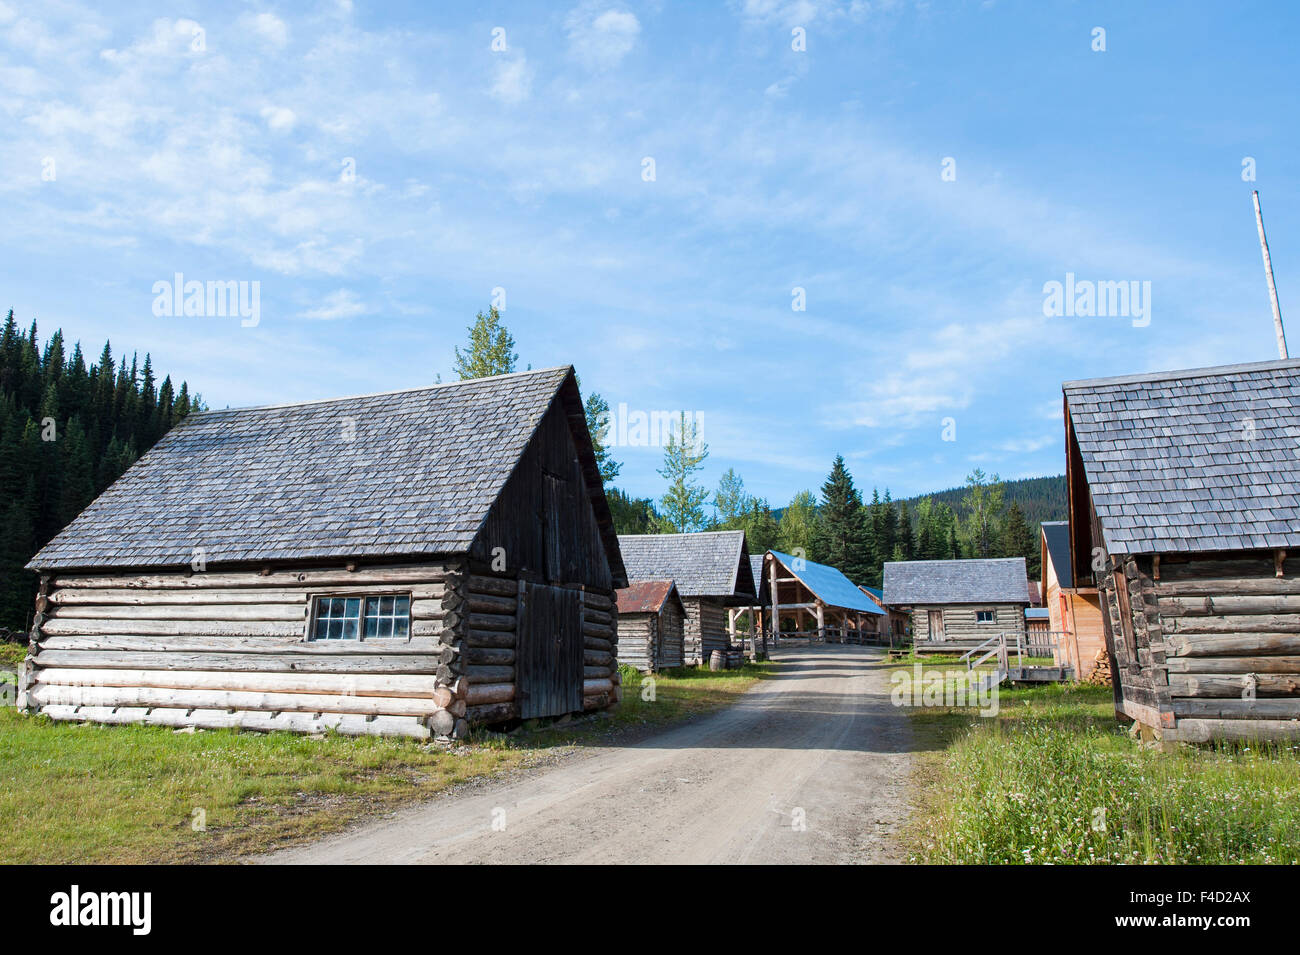 Historic old gold town Barkerville, British Columbia, Canada